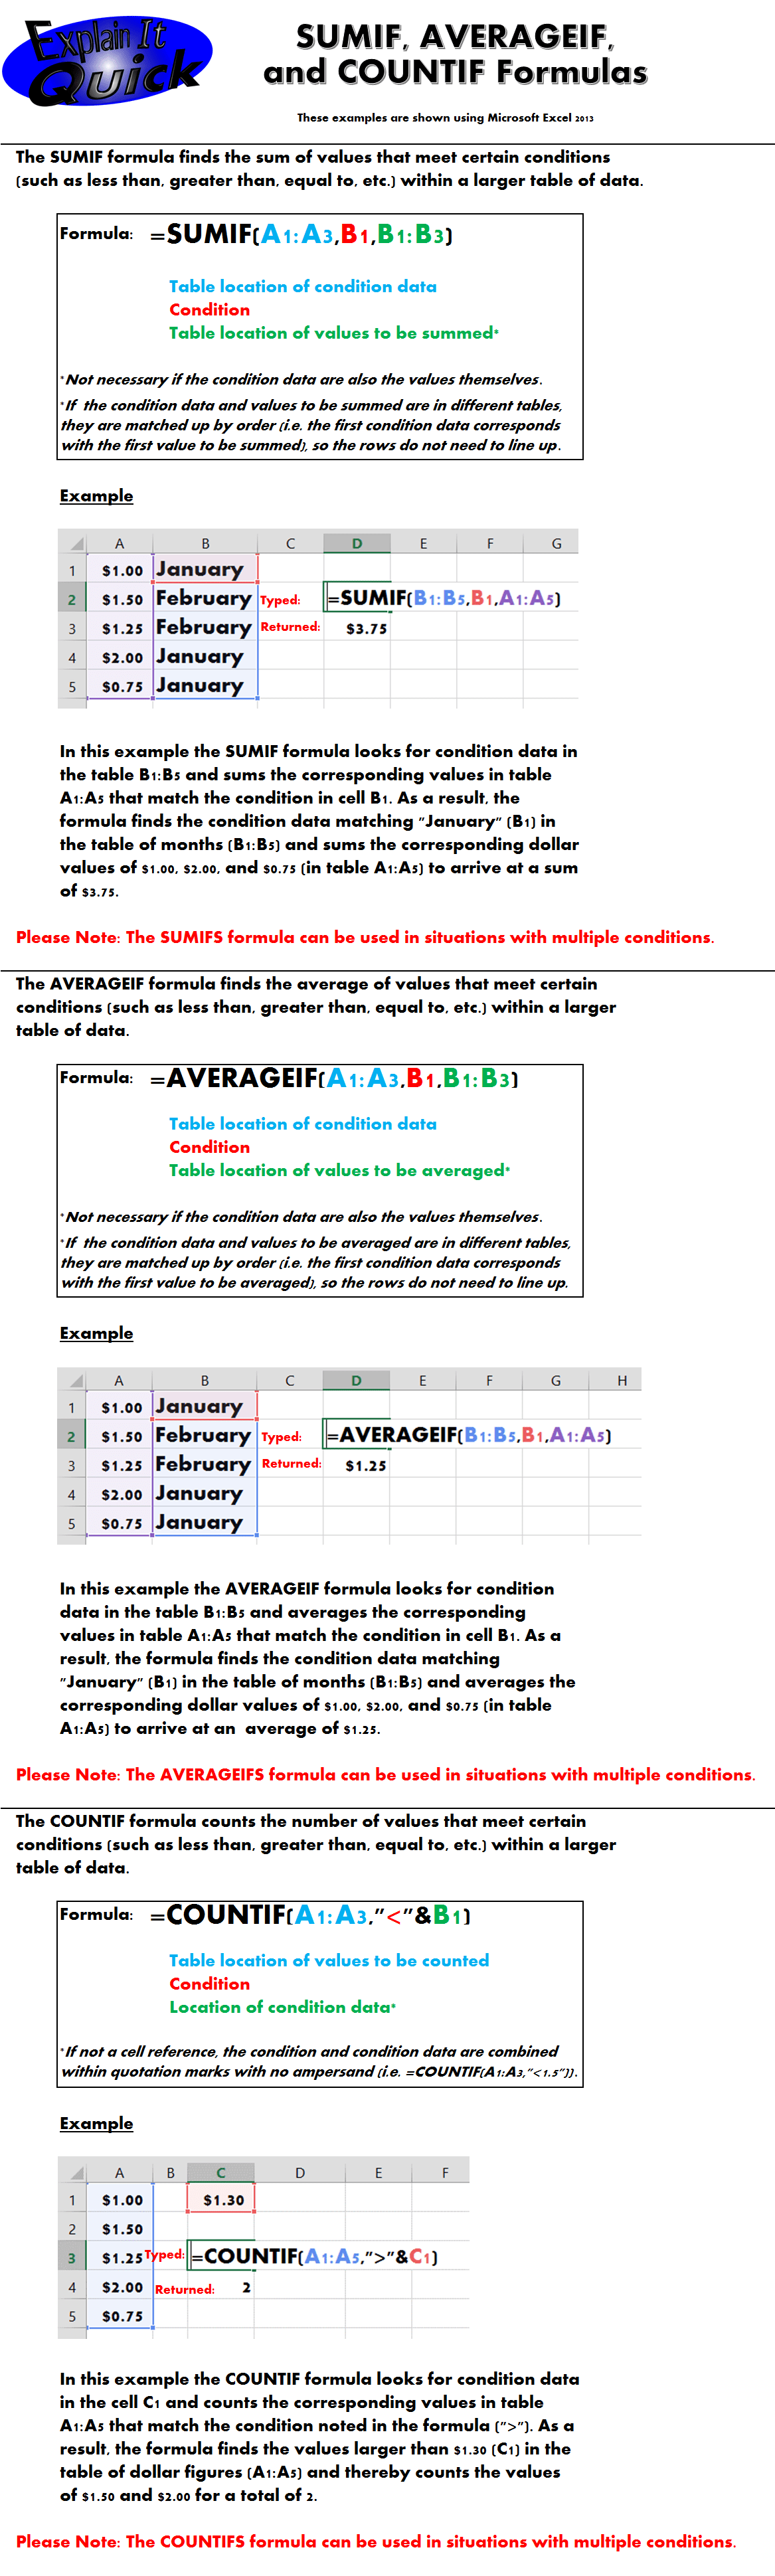 Sumif Averageif And Countif Formulas